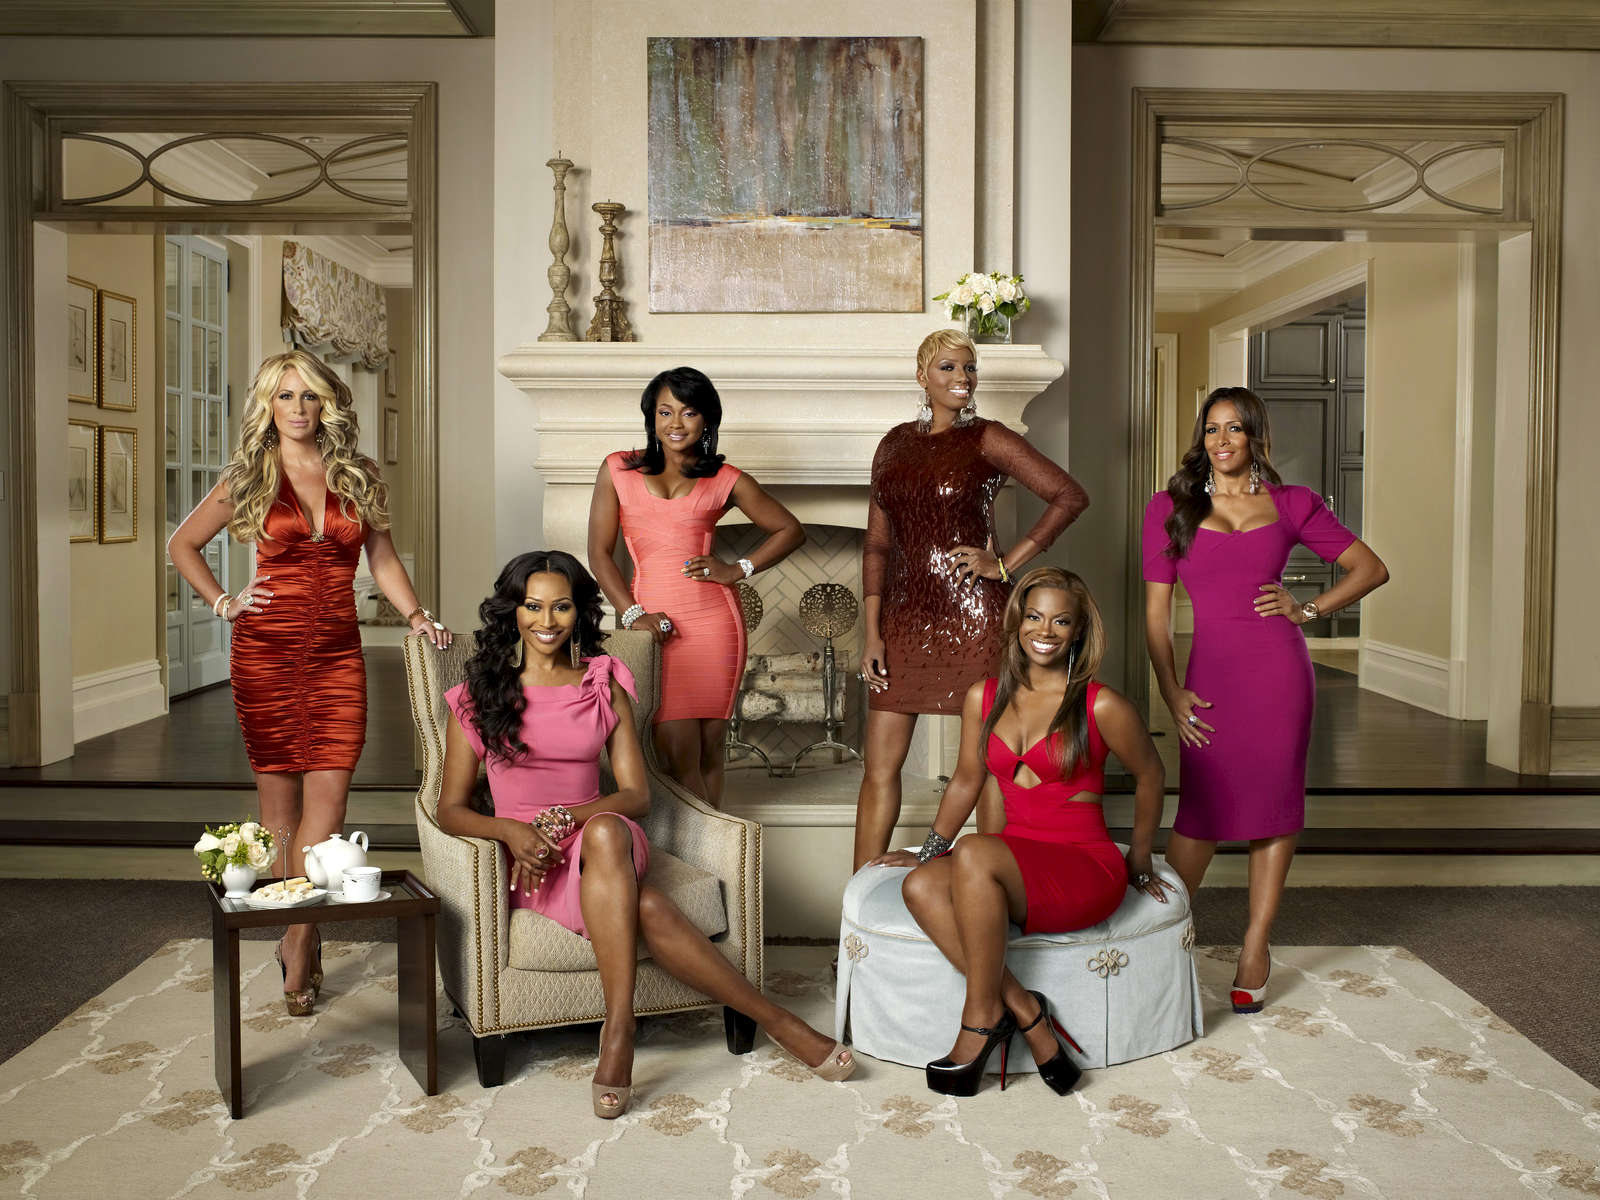 THE REAL HOUSEWIVES OF ATLANTA -- Season:4 -- Pictured: (l-r) Kim Zolciak, Cynthia Bailey, Phaedra Parks, NeNe Leakes, Kandi Burruss, Sheree Whitfield -- Photo by Quantrell Colbert/Bravo